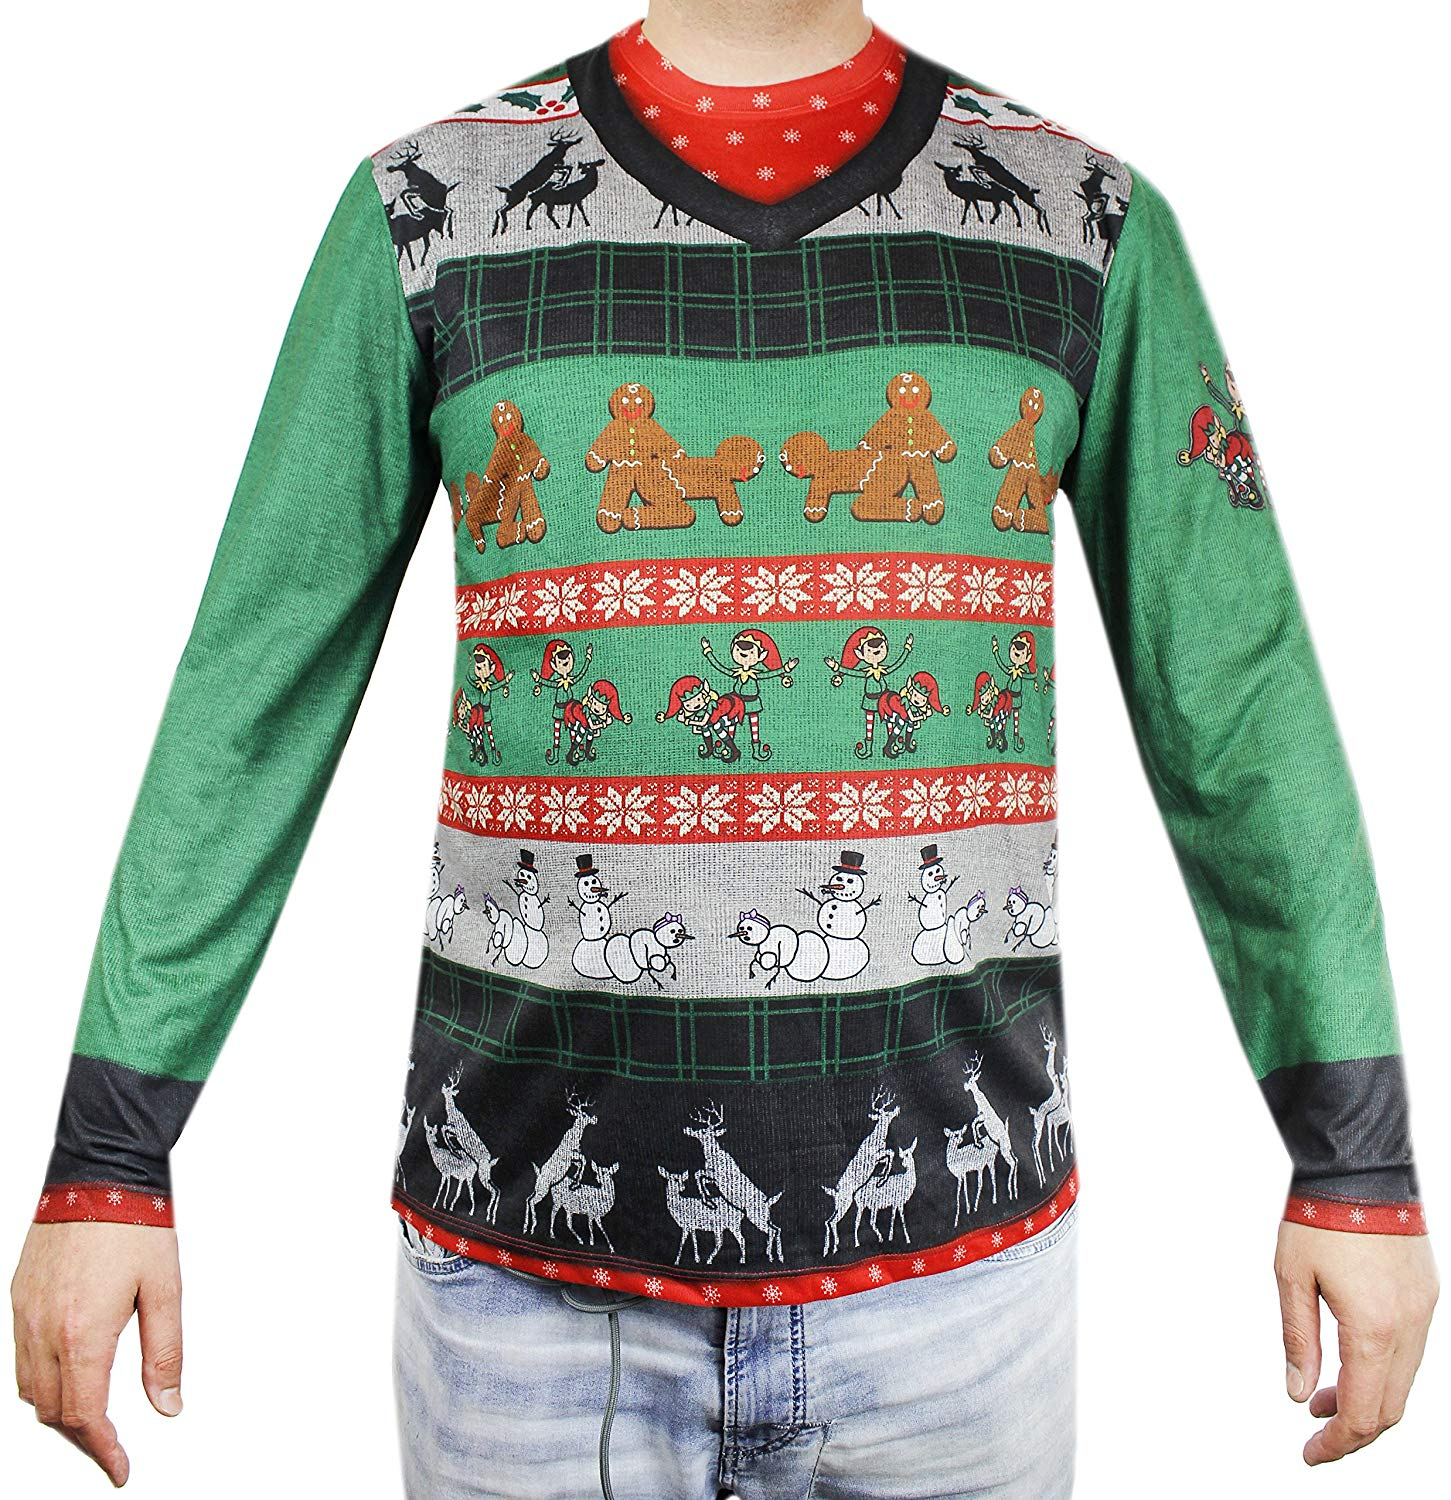 Dirty Christmas sweater with doggy style elves, gingerbread men, snowmen, and reindeer